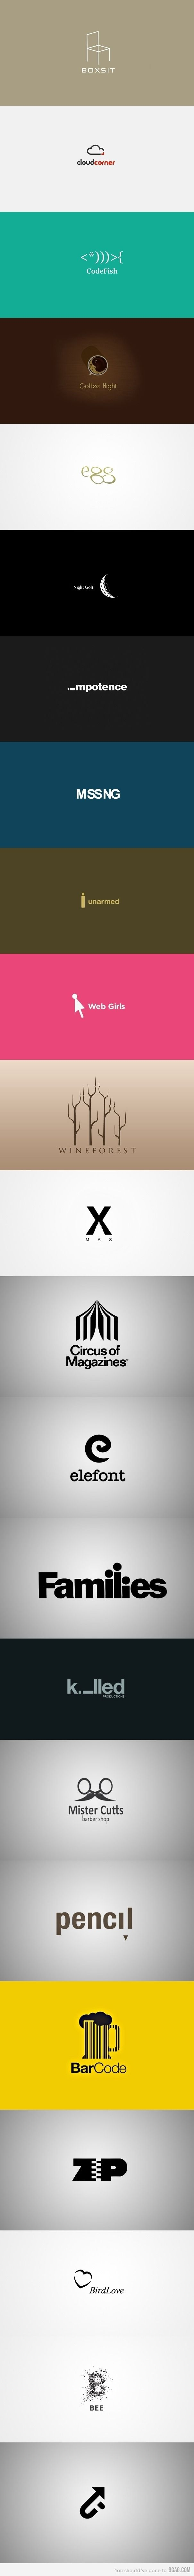 Logo. These logos very cleverly incorporate the title of the company into the logo itself.